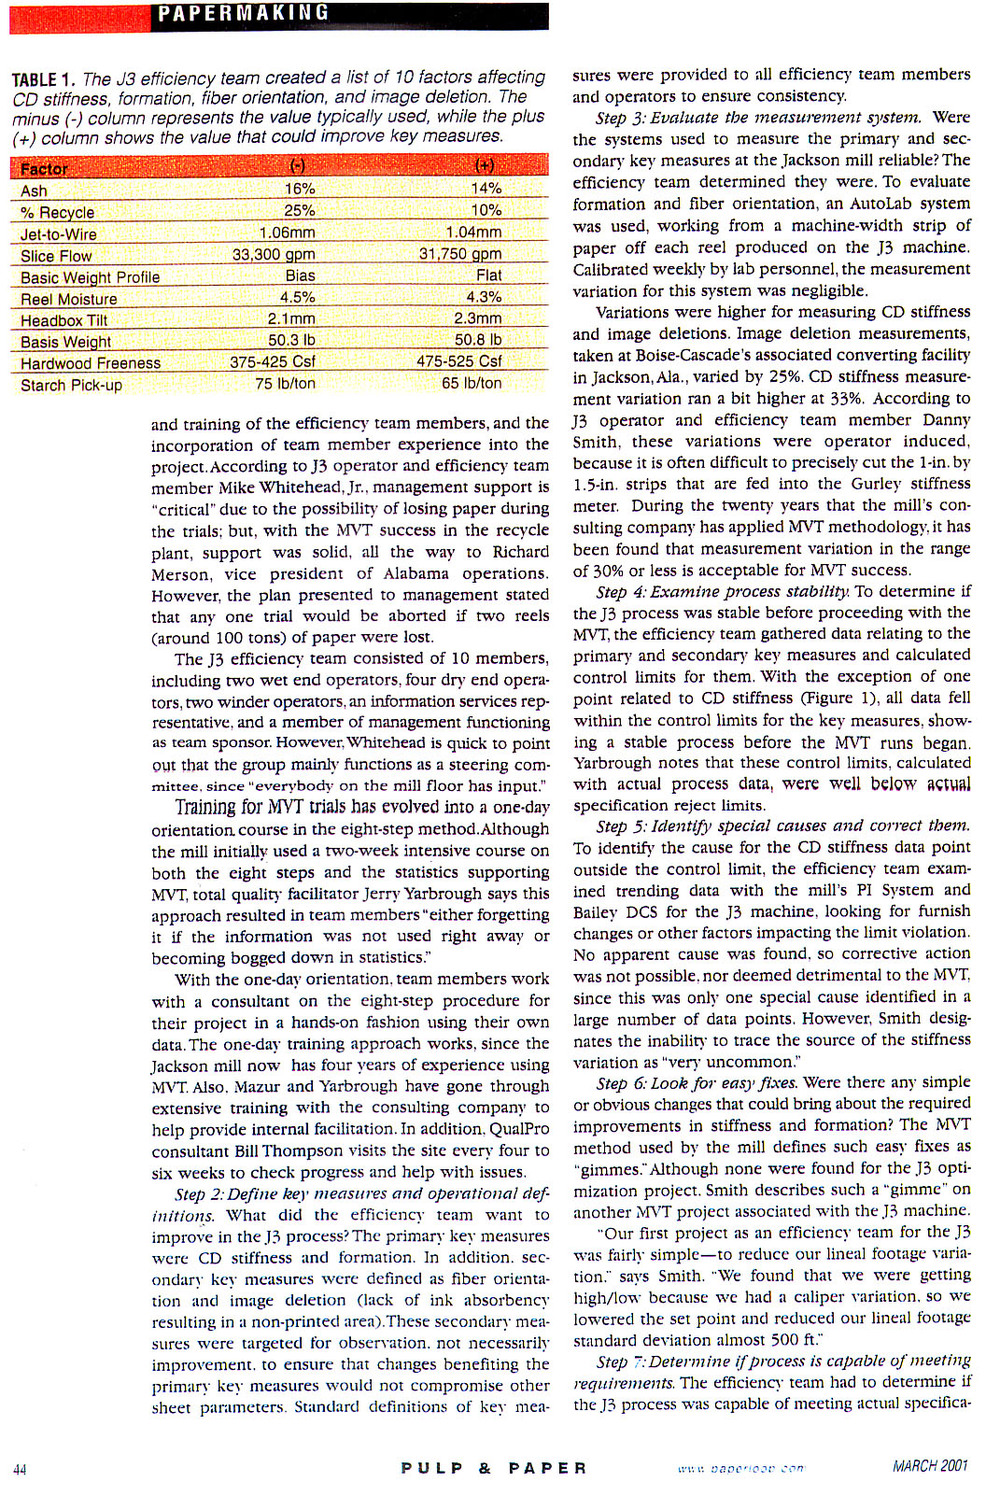 pulp & paper-march 2001-optimization method improves paper, pulp processes at boise cascade  page 2.jpg